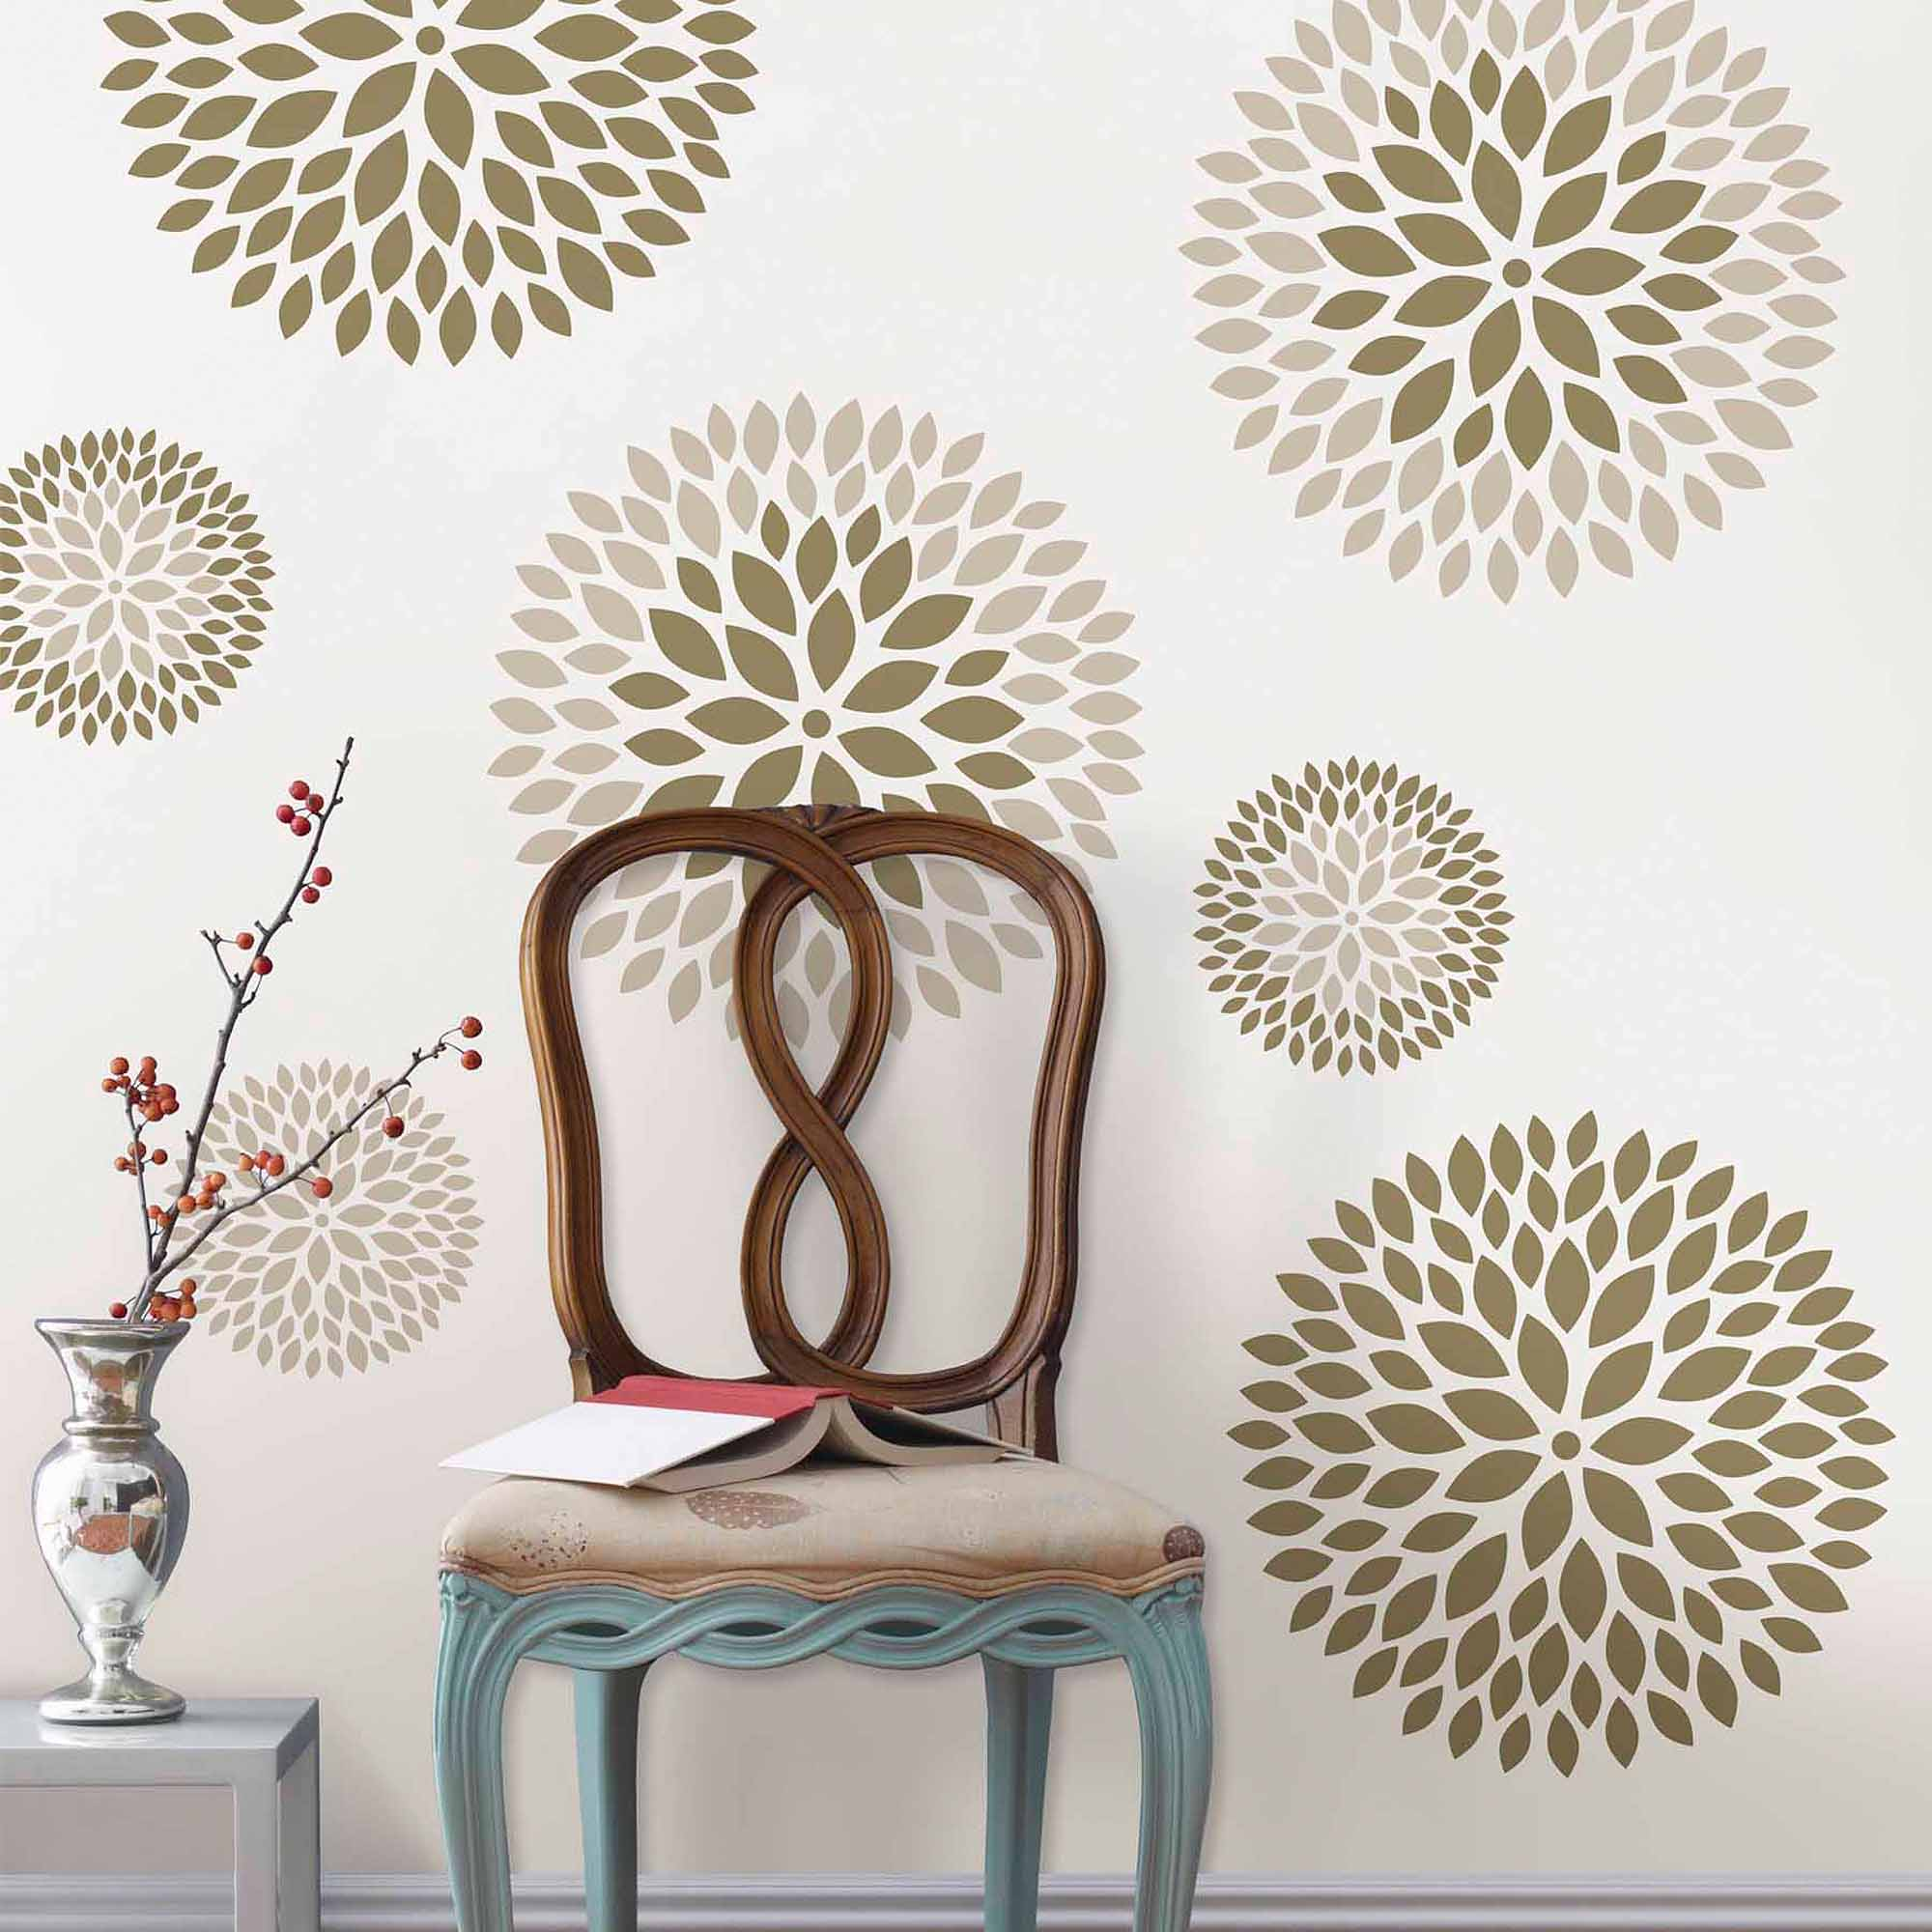 WallPops Chrysanthemum Wall Art Kit